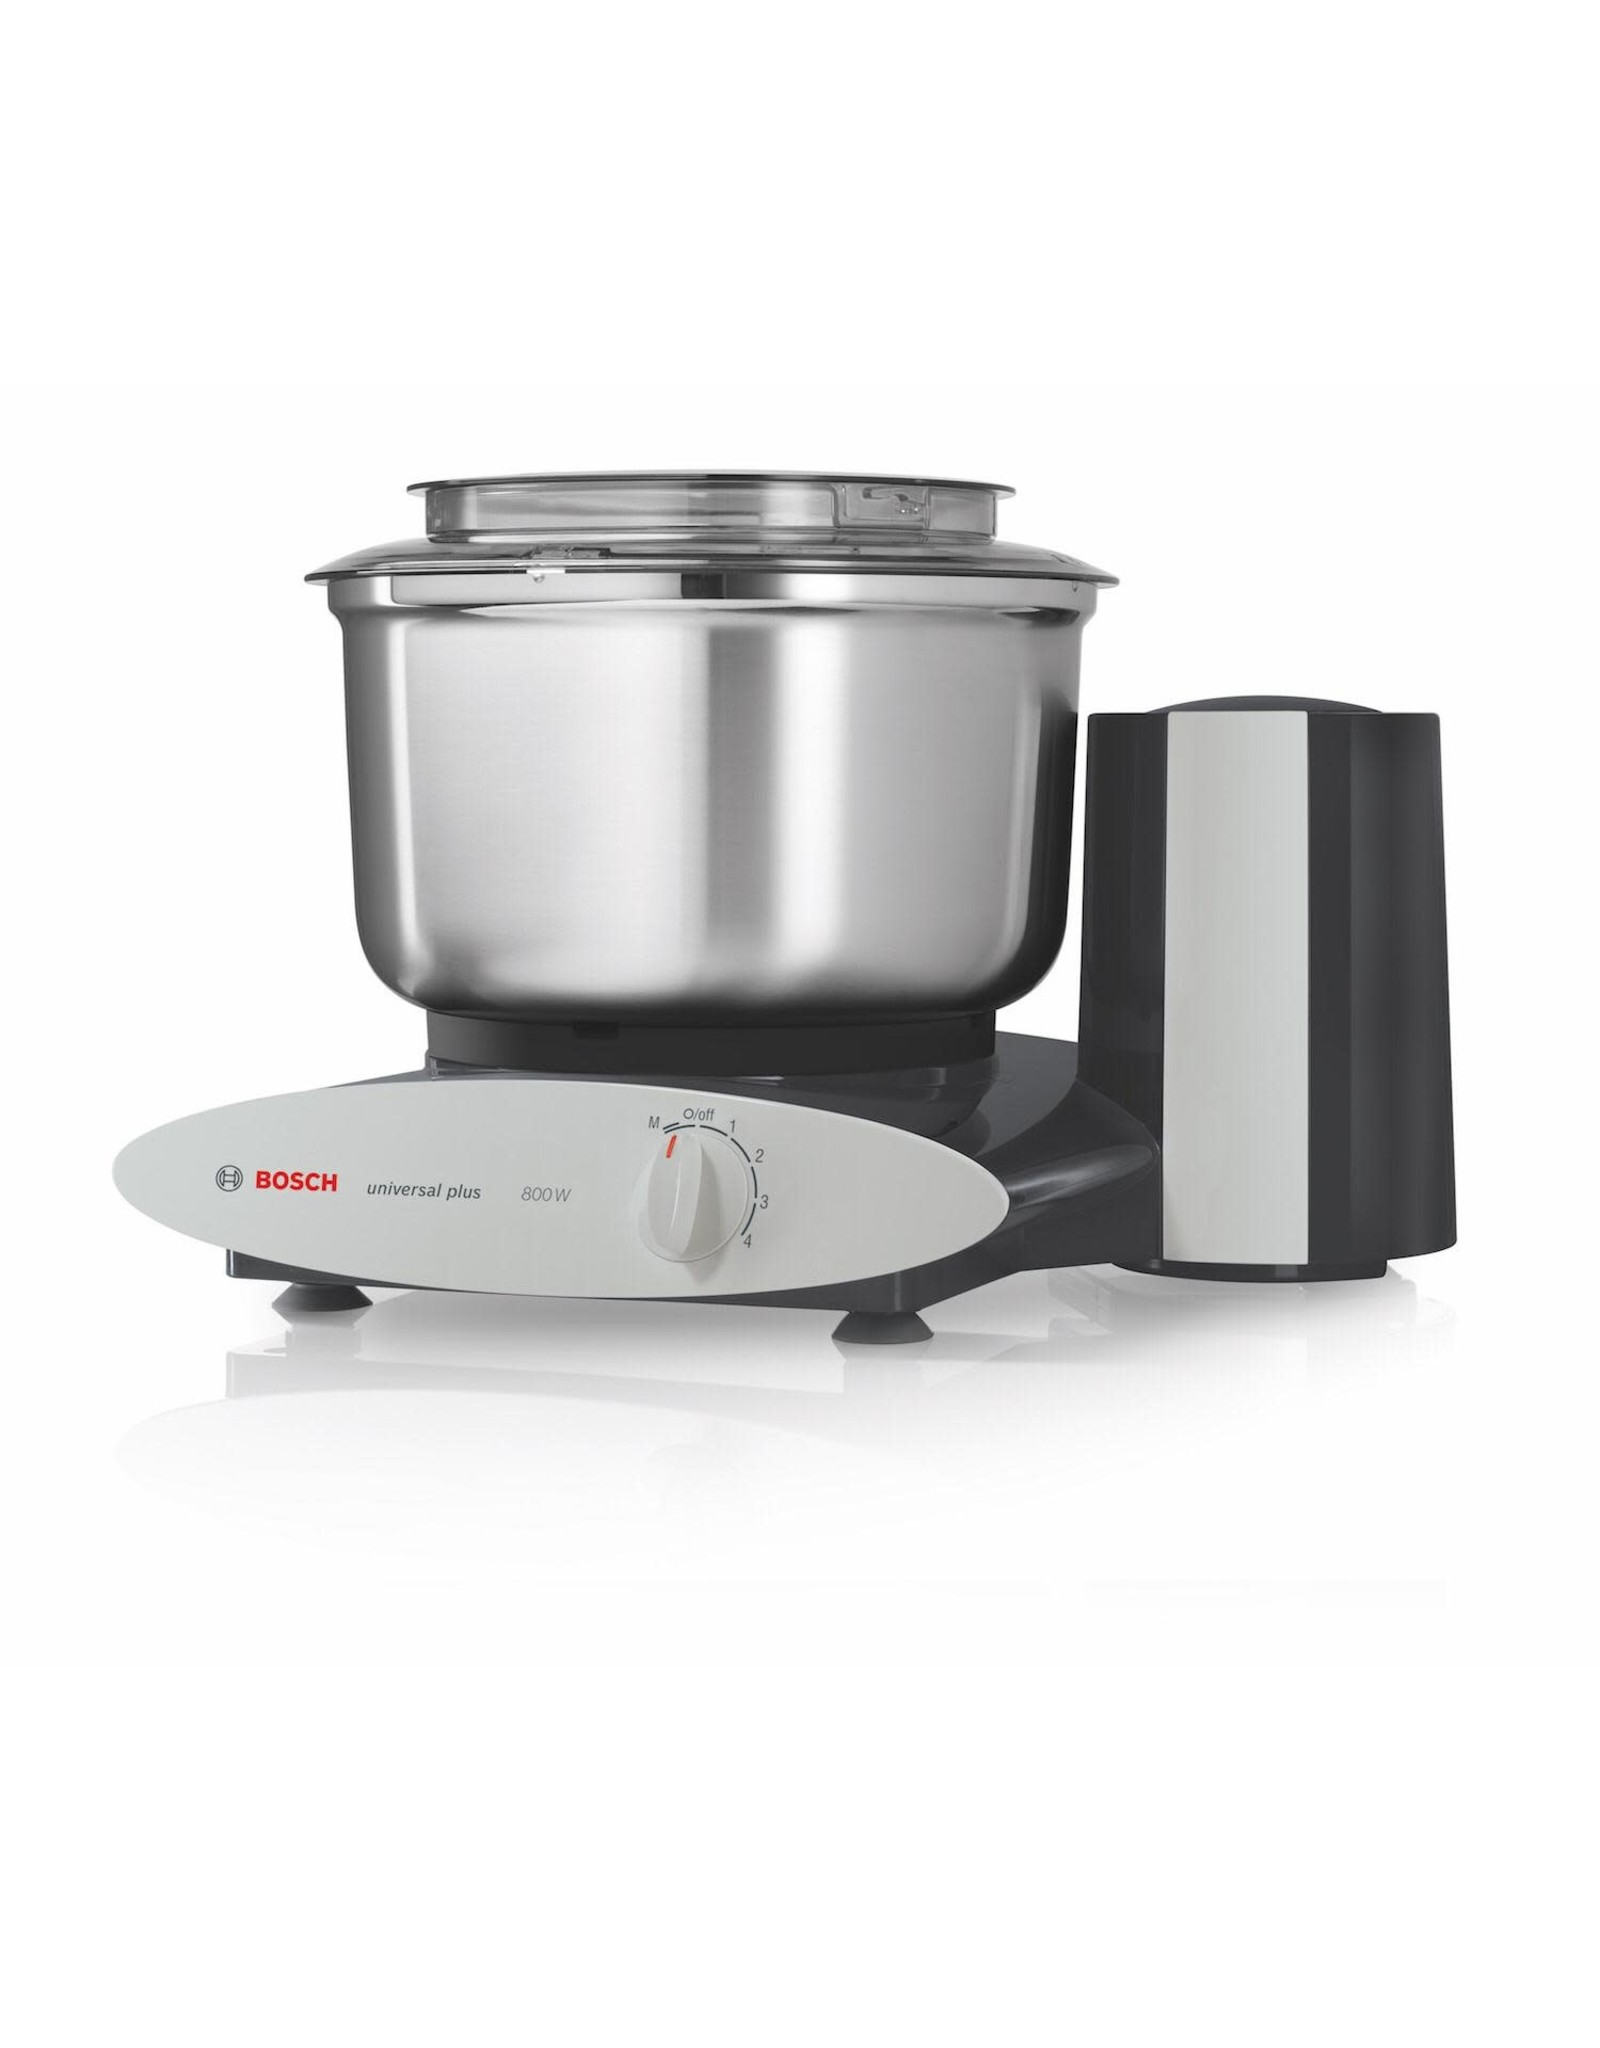 Bosch Universal Mixer Limited Edition Black Stainless